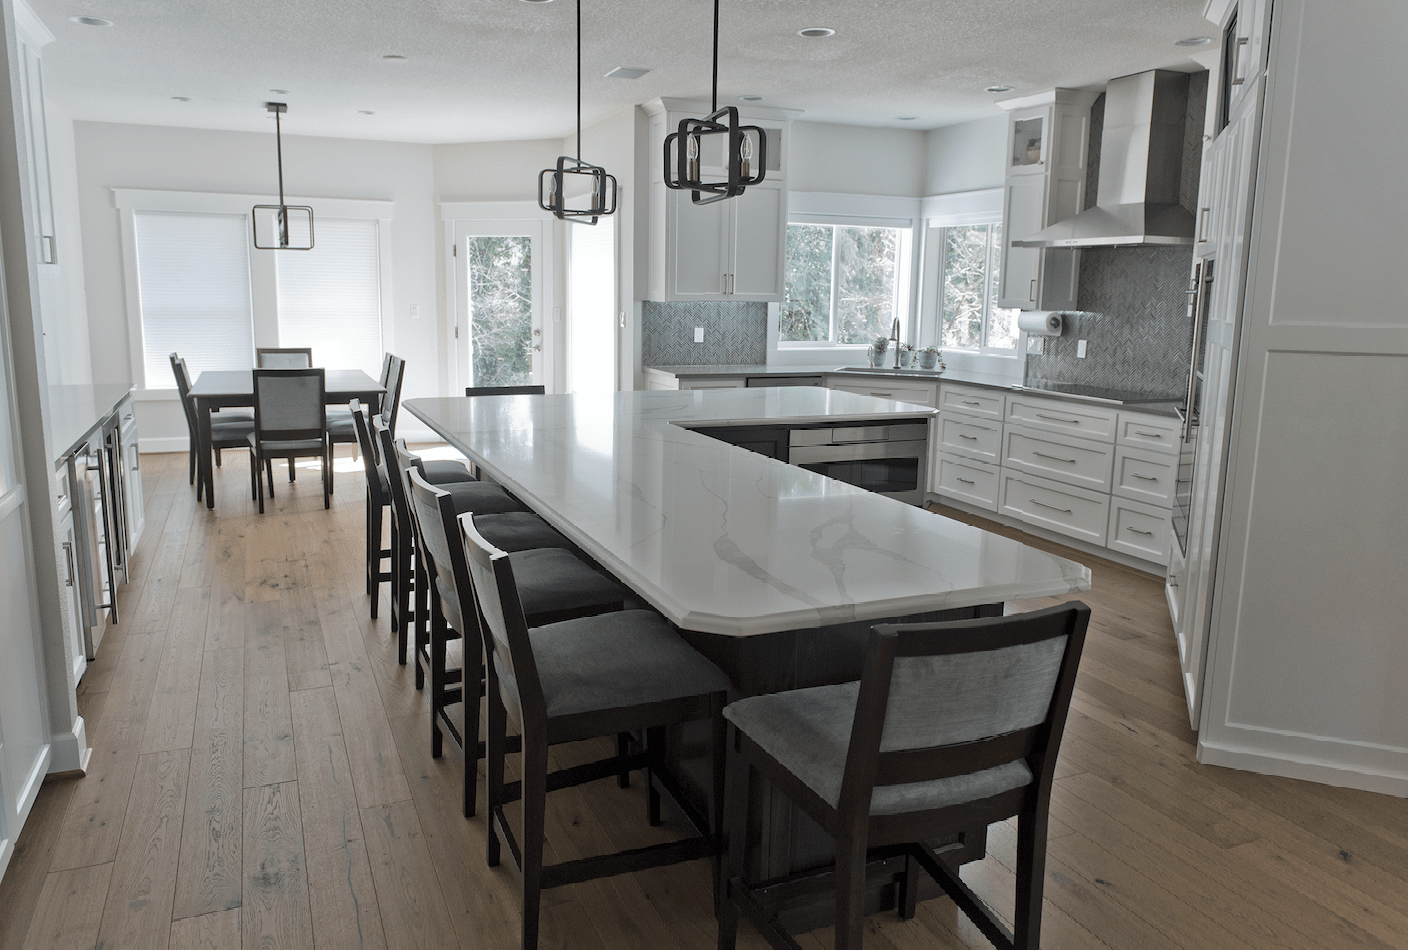 Kitchen island installation in Vancouver, CN from All Surfaces